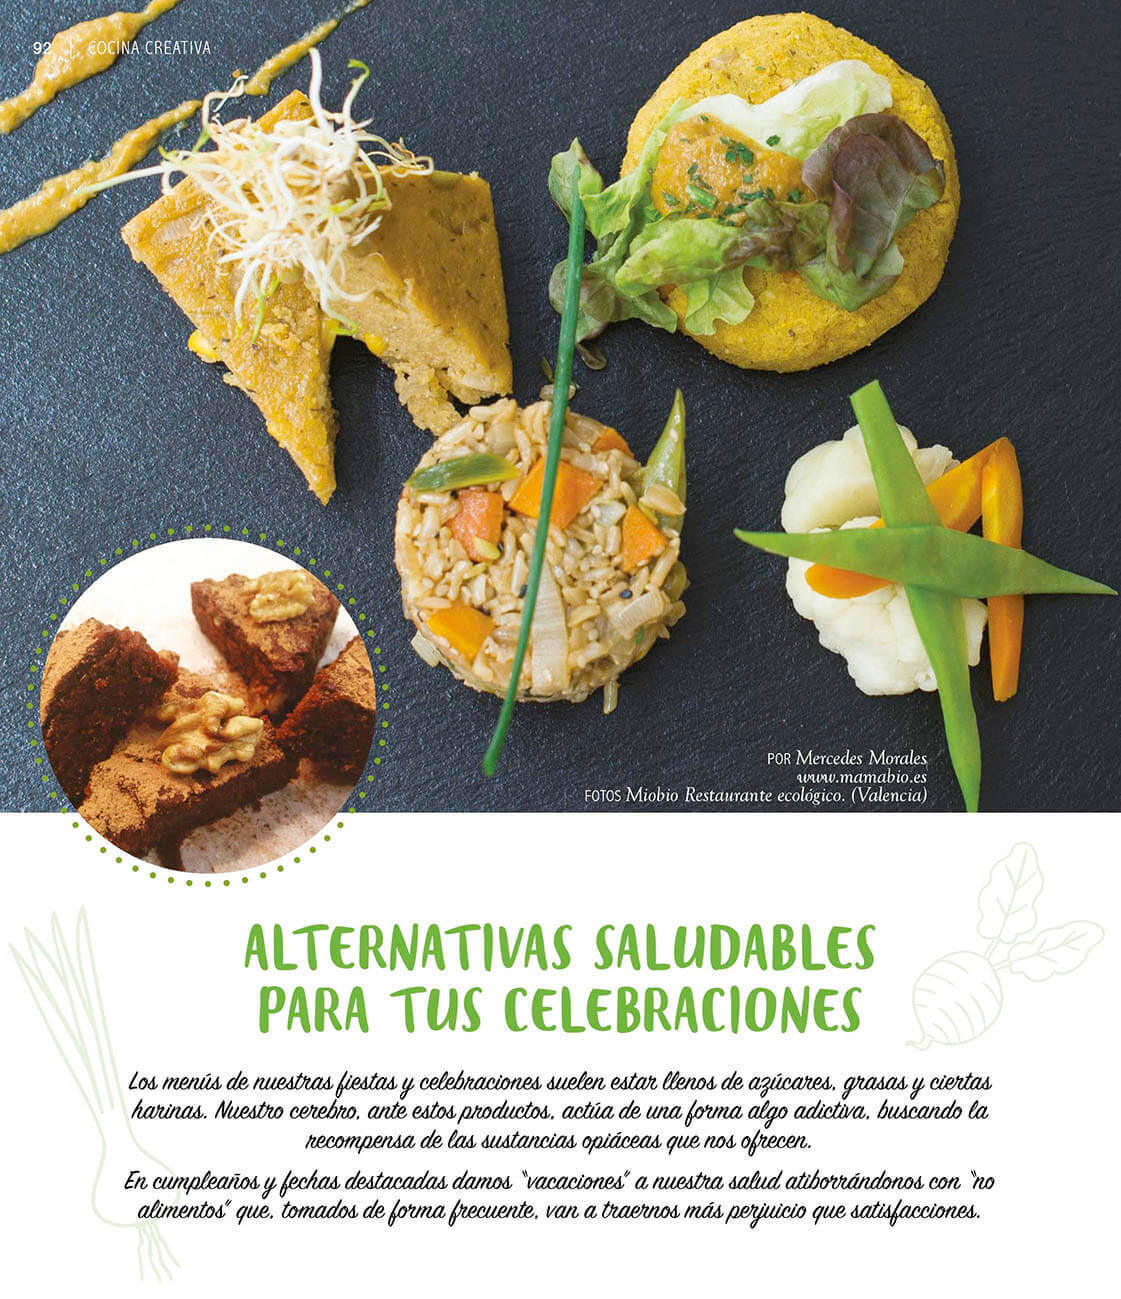 Alternativas saludables para celebrar